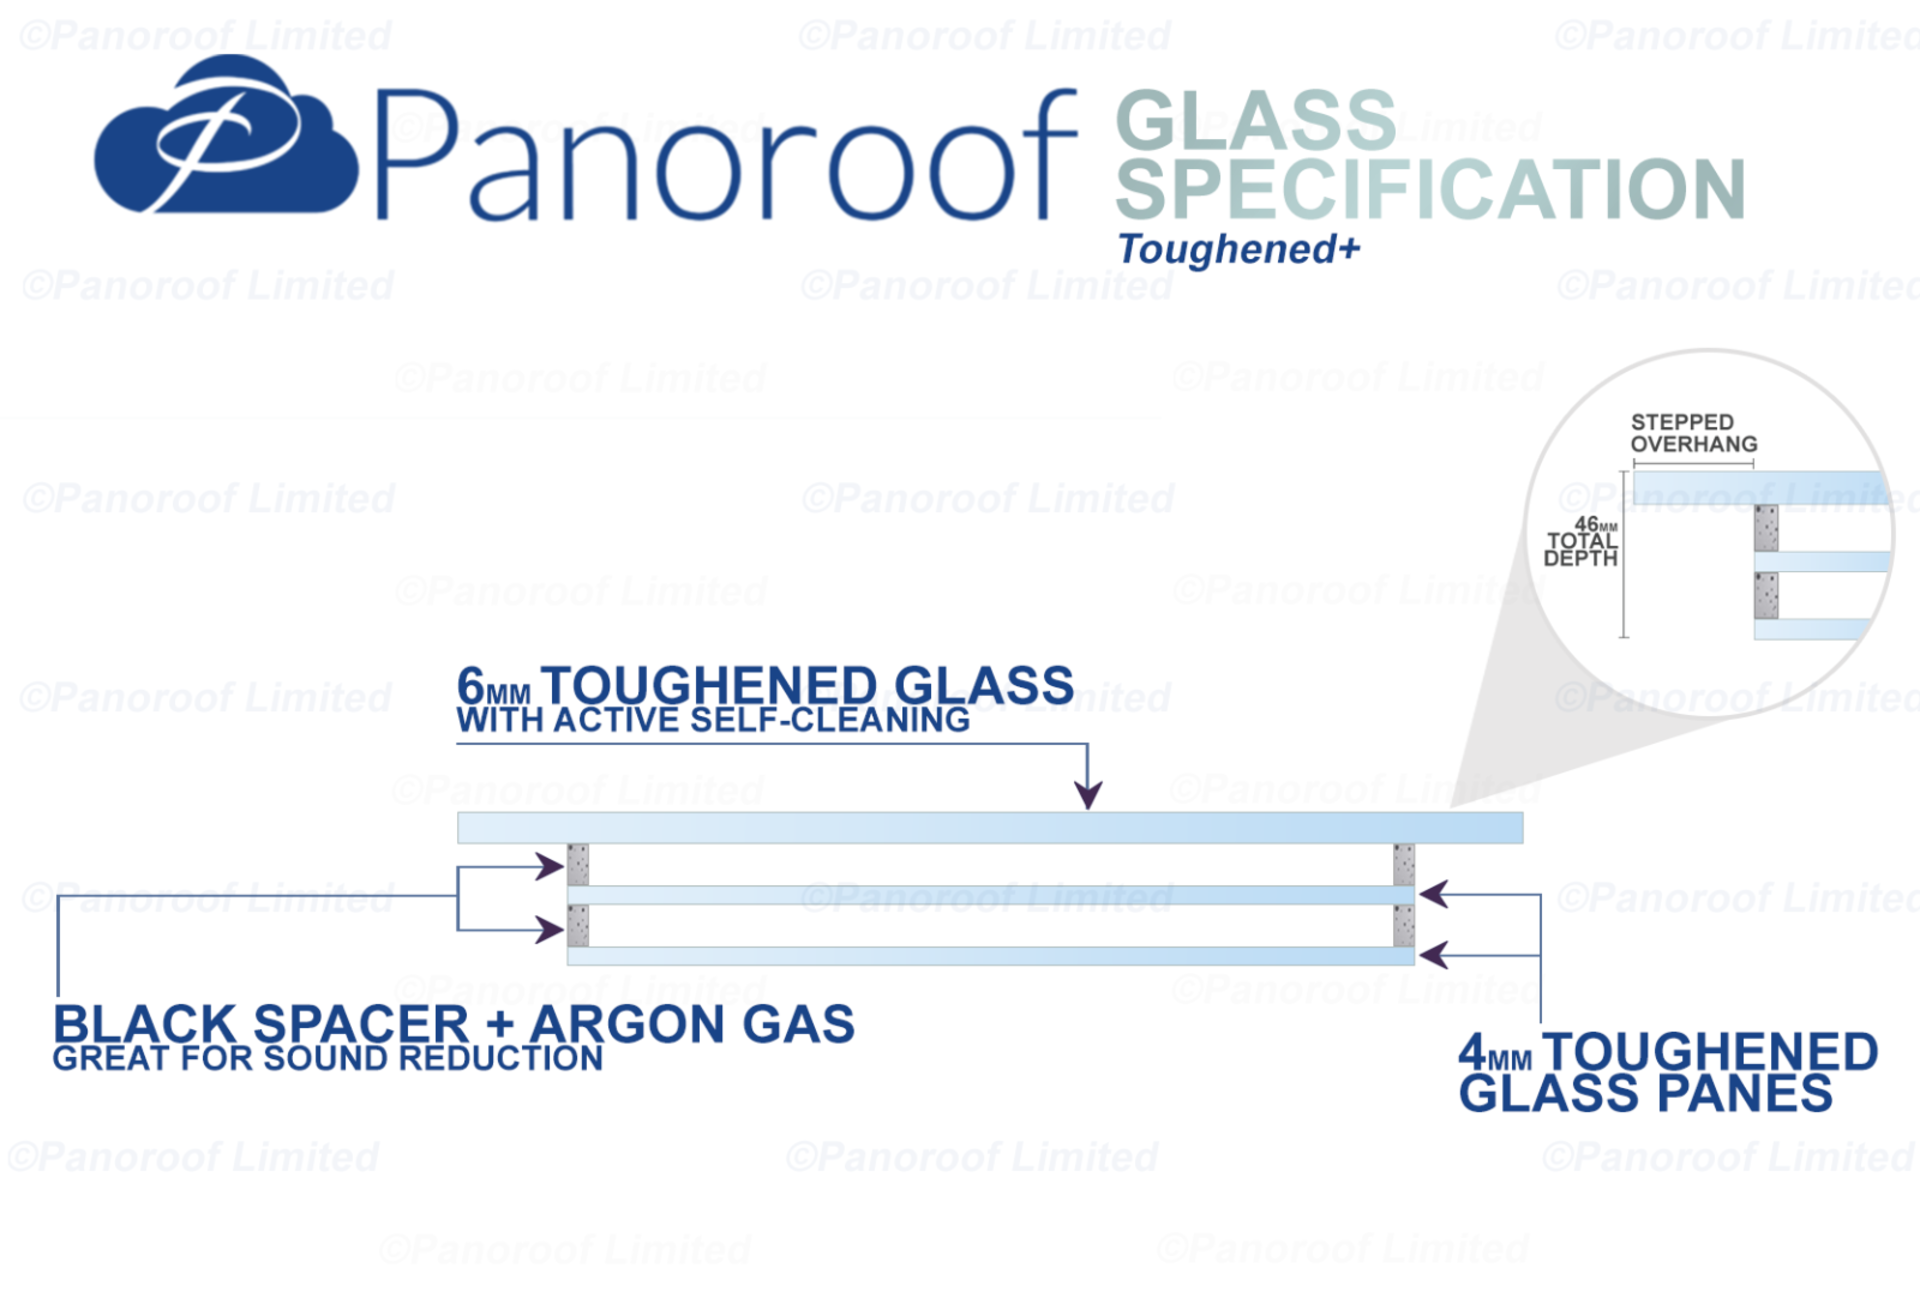 """""""""""""""Panoroof Triple Glazed Self Cleaning 500x1200mm (inside Size Visable glass area) Seamless Glass - Image 5 of 6"""